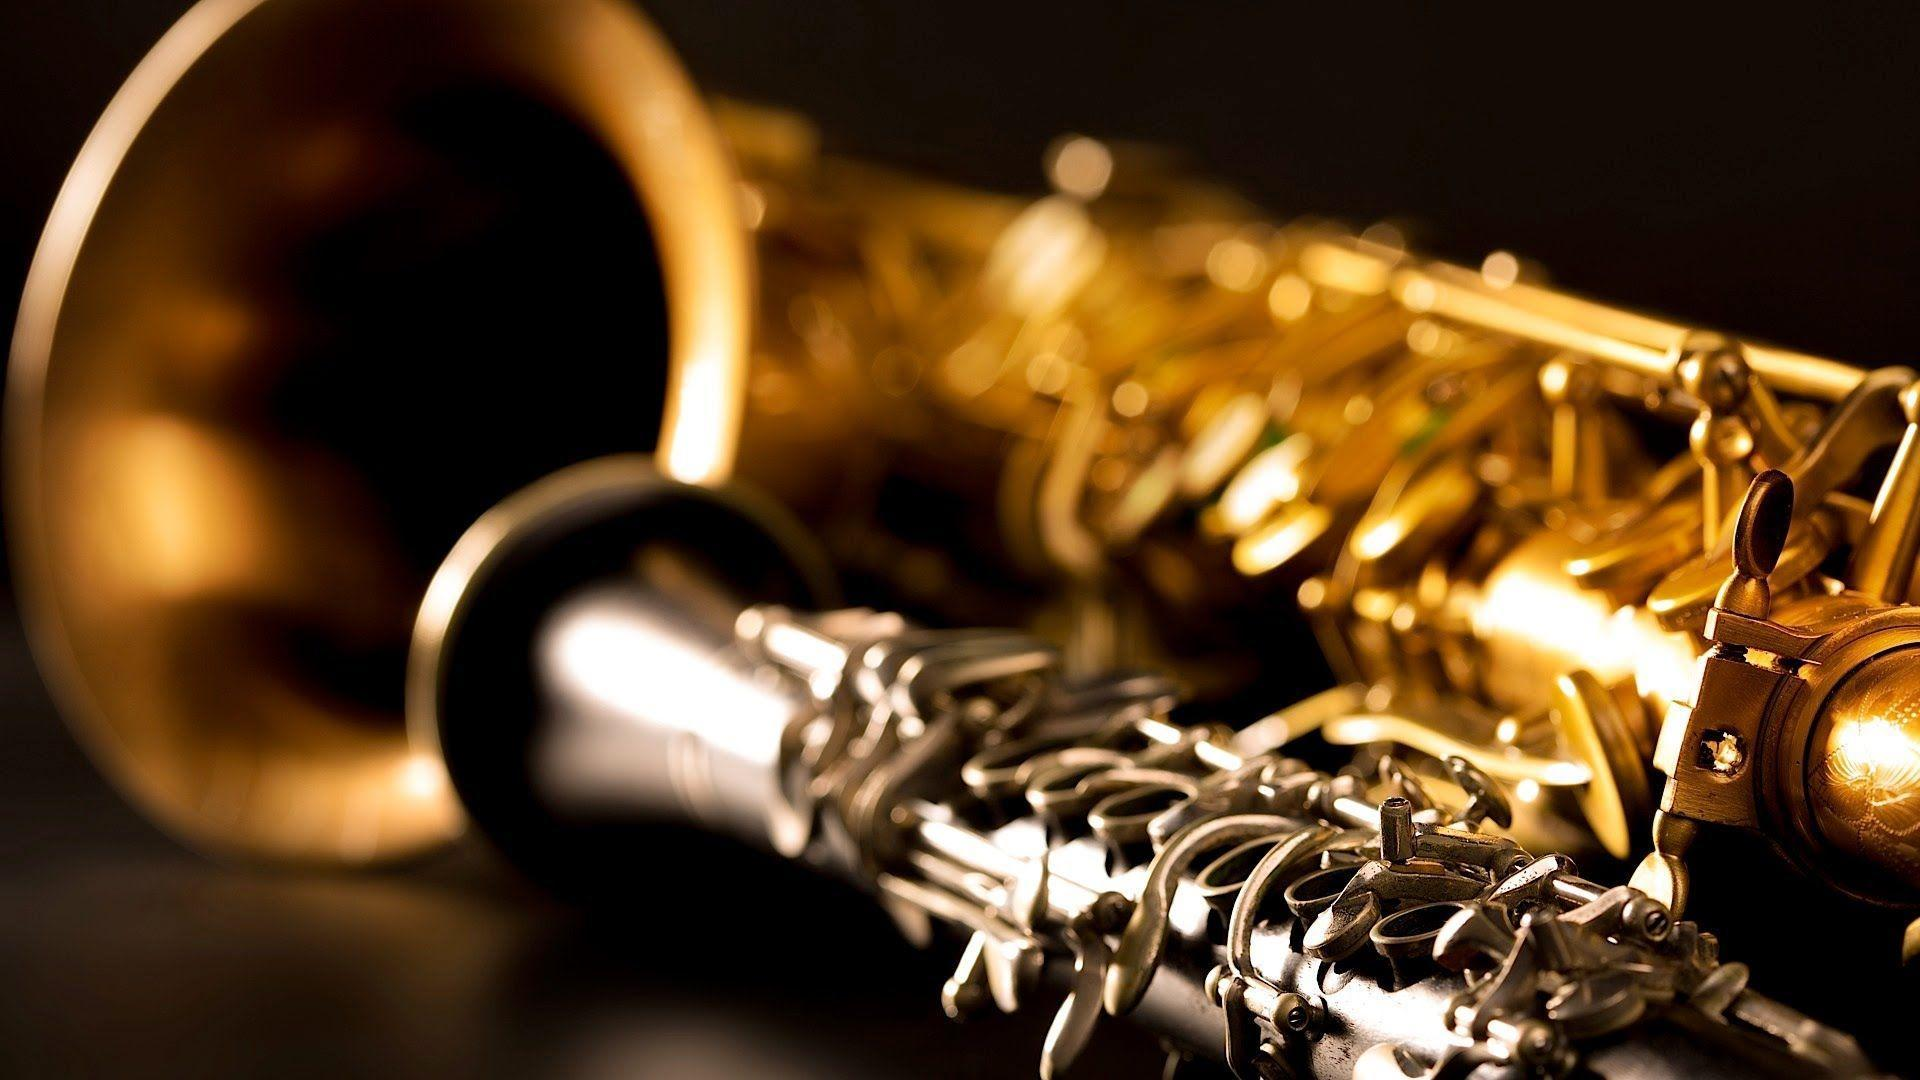 Saxophone Wallpapers Phone Smooth Jazz Art For Iphone Player Ska ...